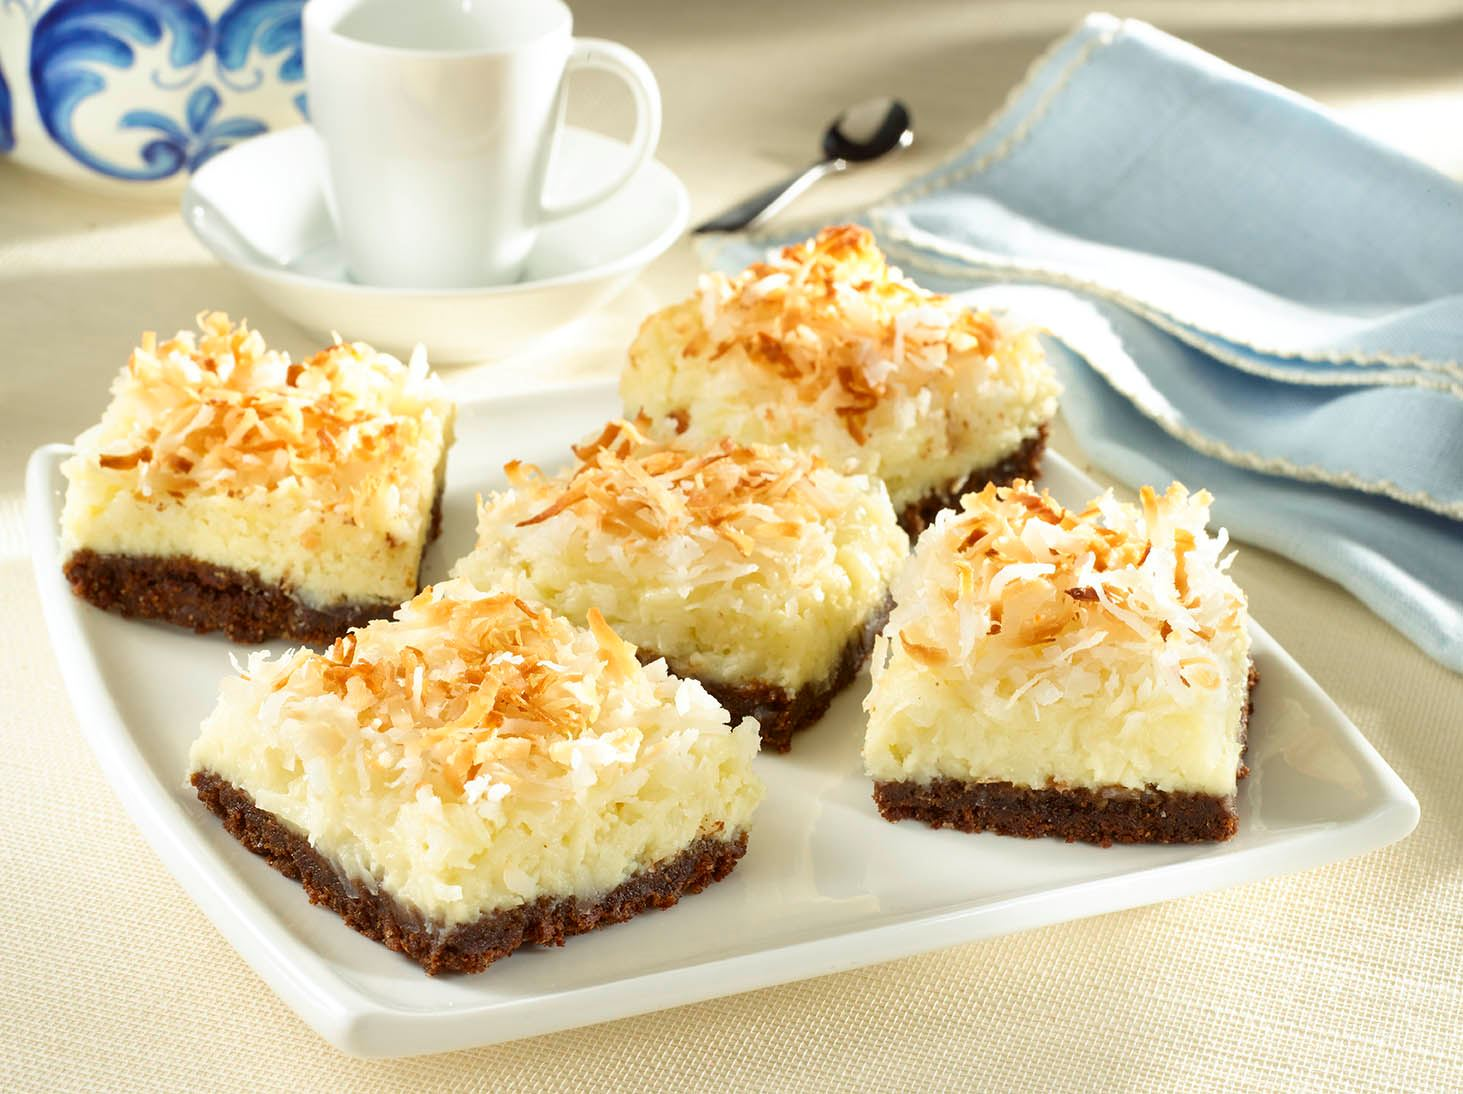 Barritas de Cheesecake de Coco